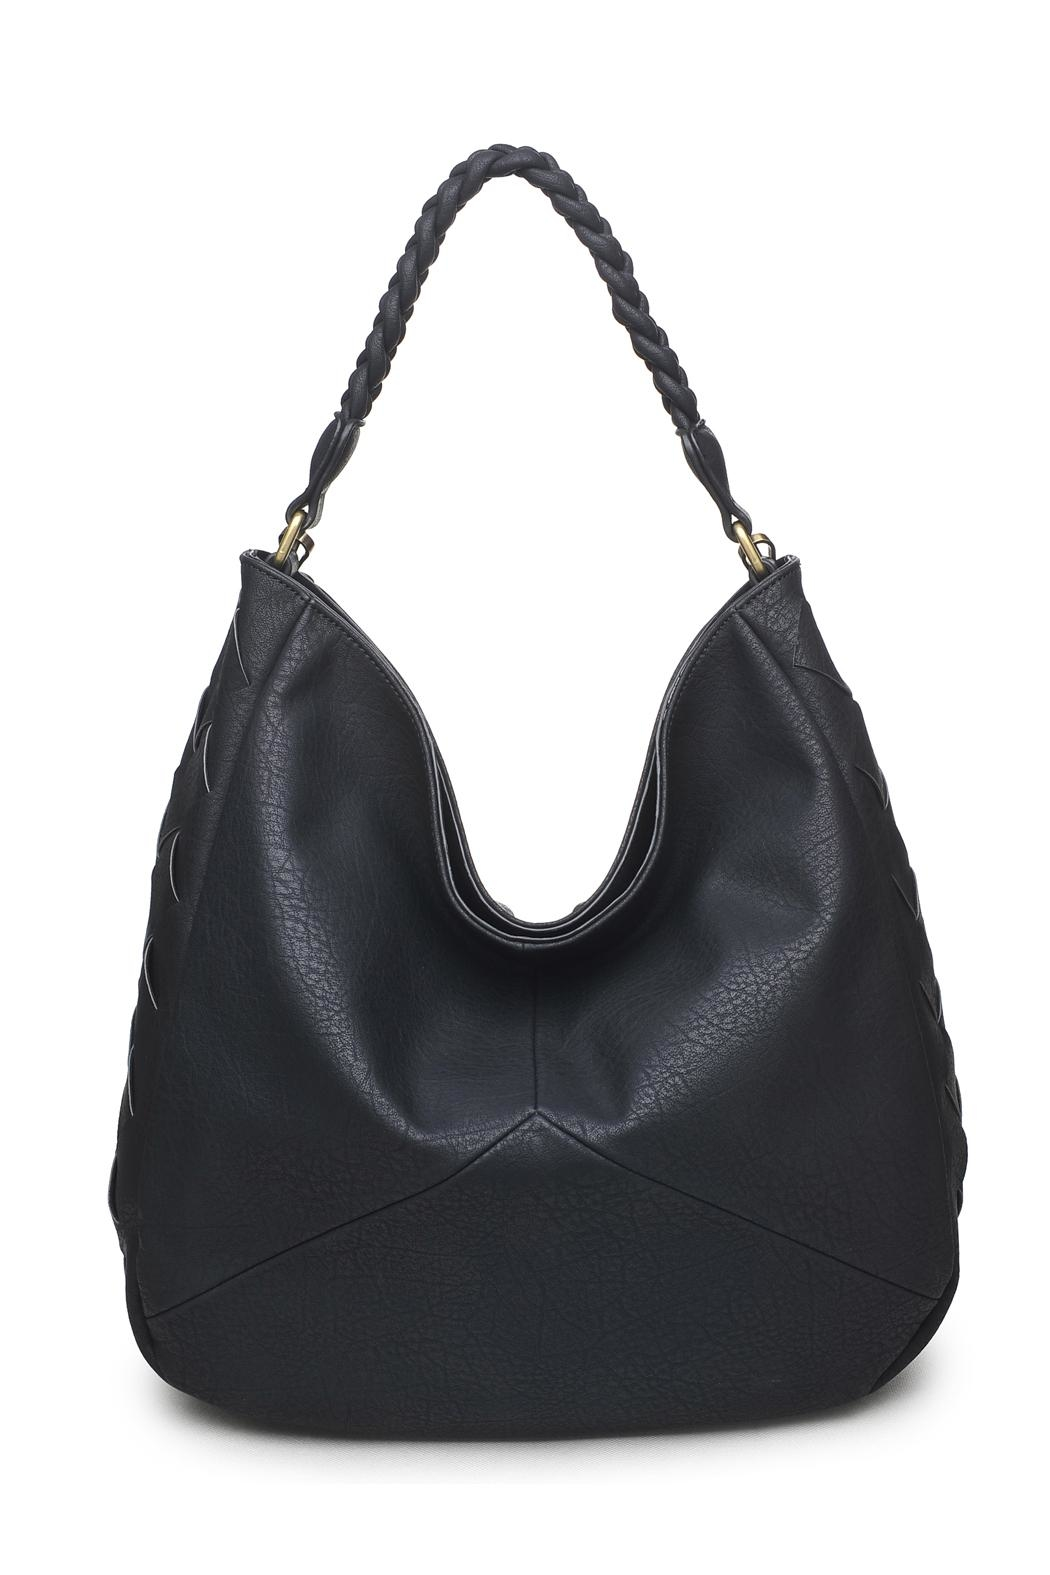 Urban Expressions Black Hobo Bag - Front Cropped Image